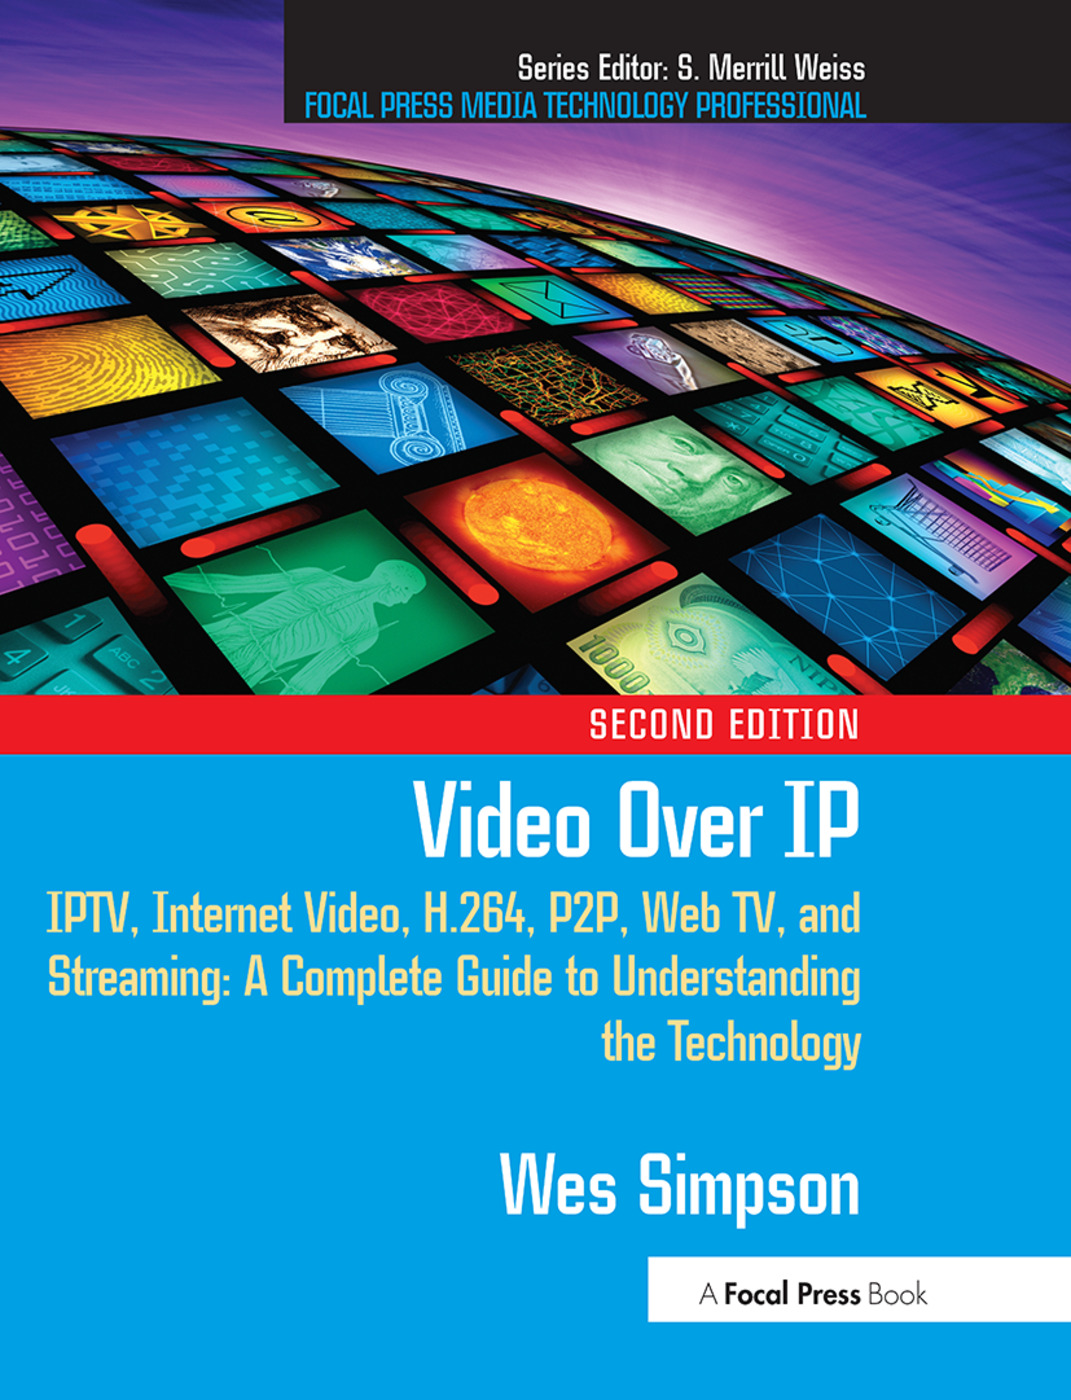 Video Over IP